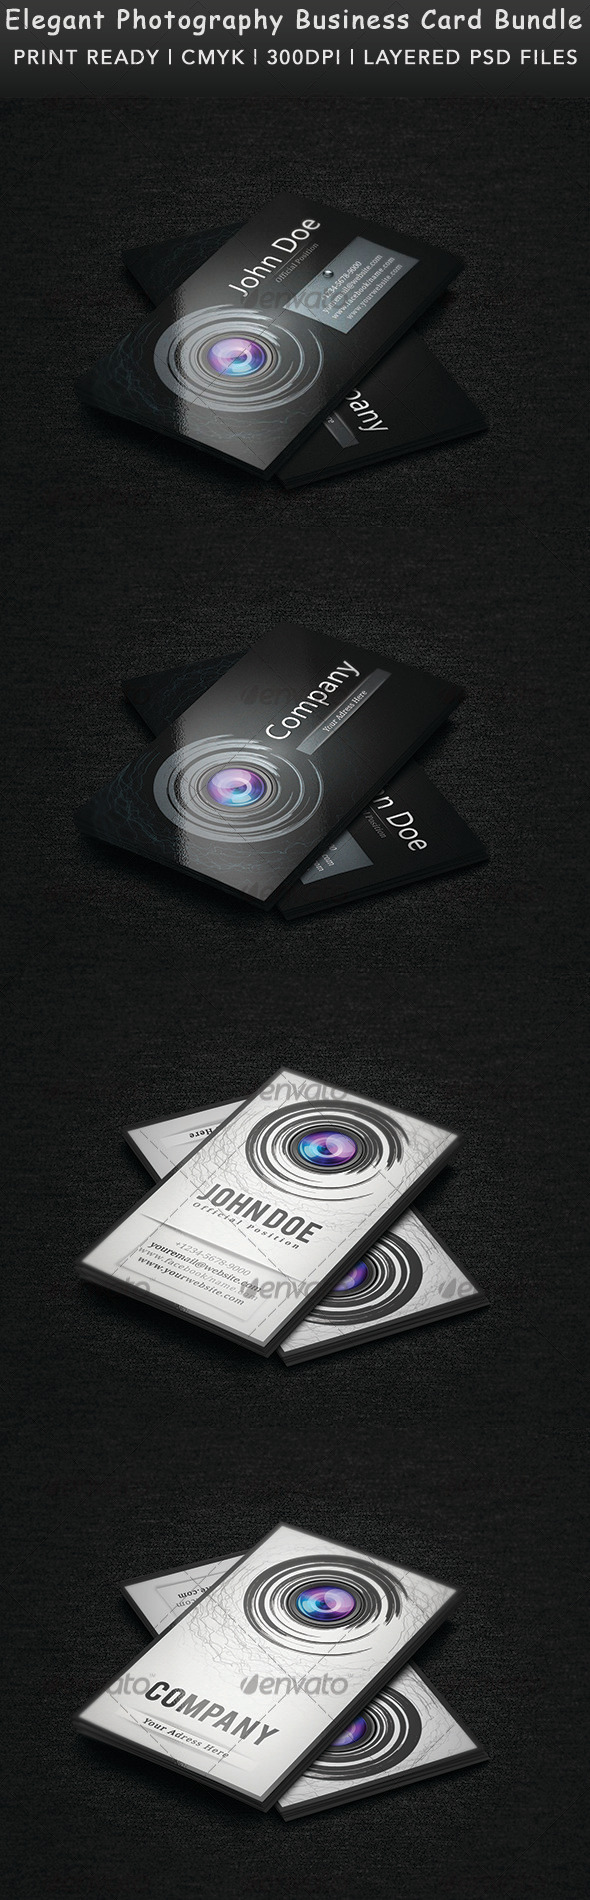 GraphicRiver Elegant Photography Business Card Bundle 3575742